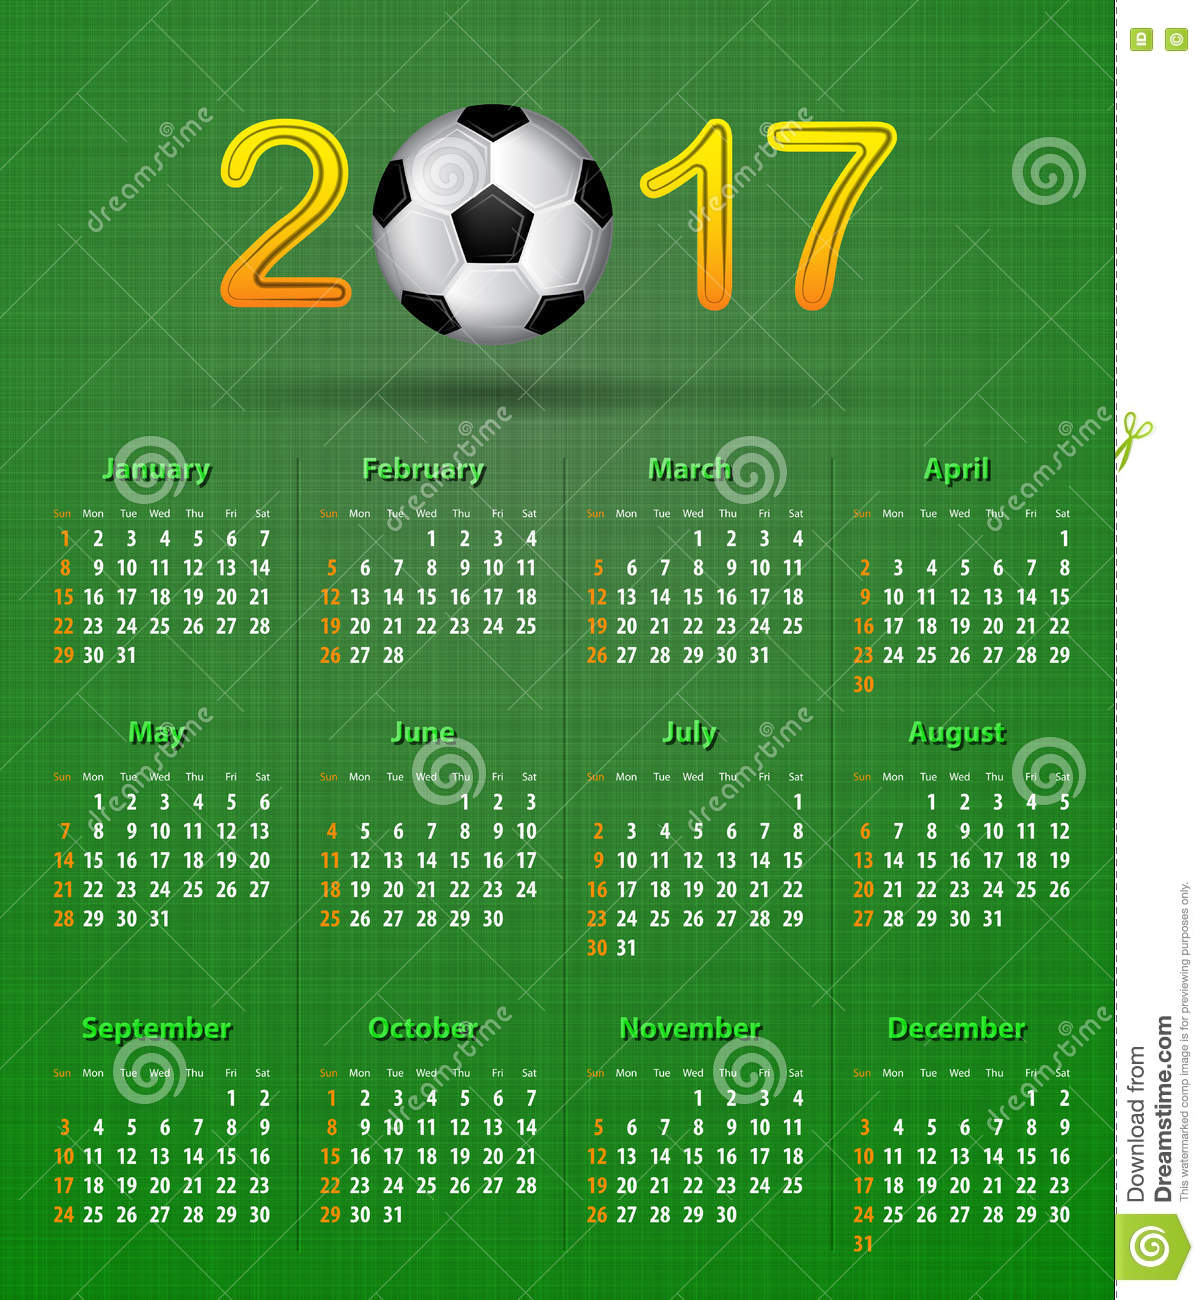 Calendario Sport.Soccer Calendar For 2017 On Green Linen Texture Stock Vector